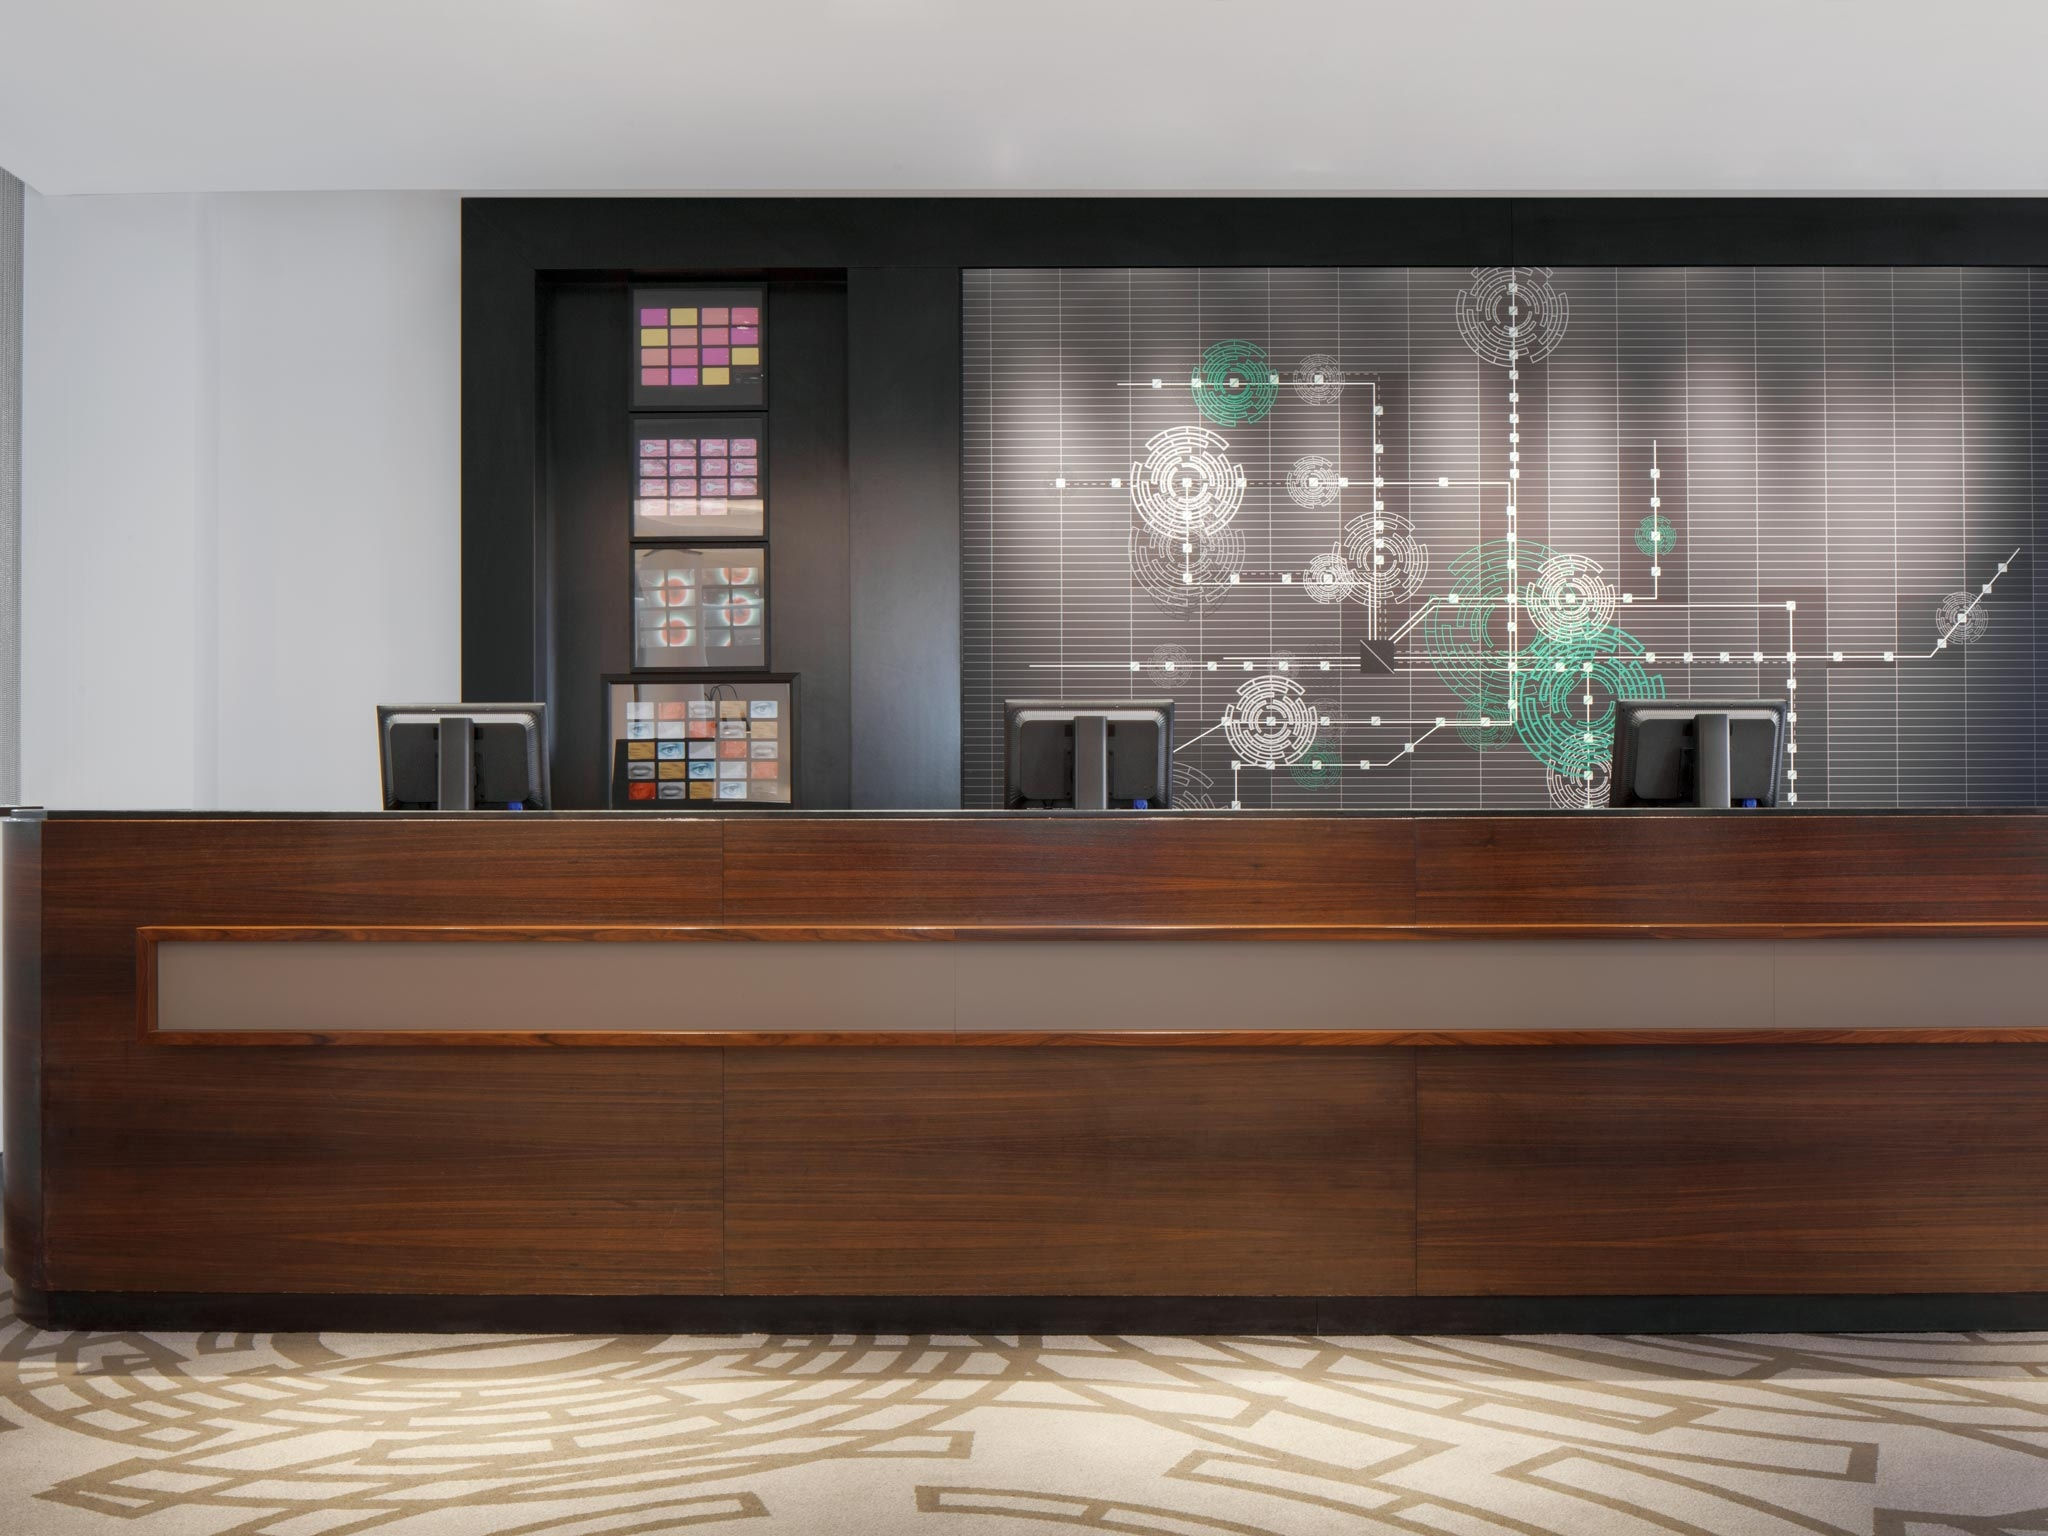 stylish and inspiring Le Méridien reception - Design Hotel Munich